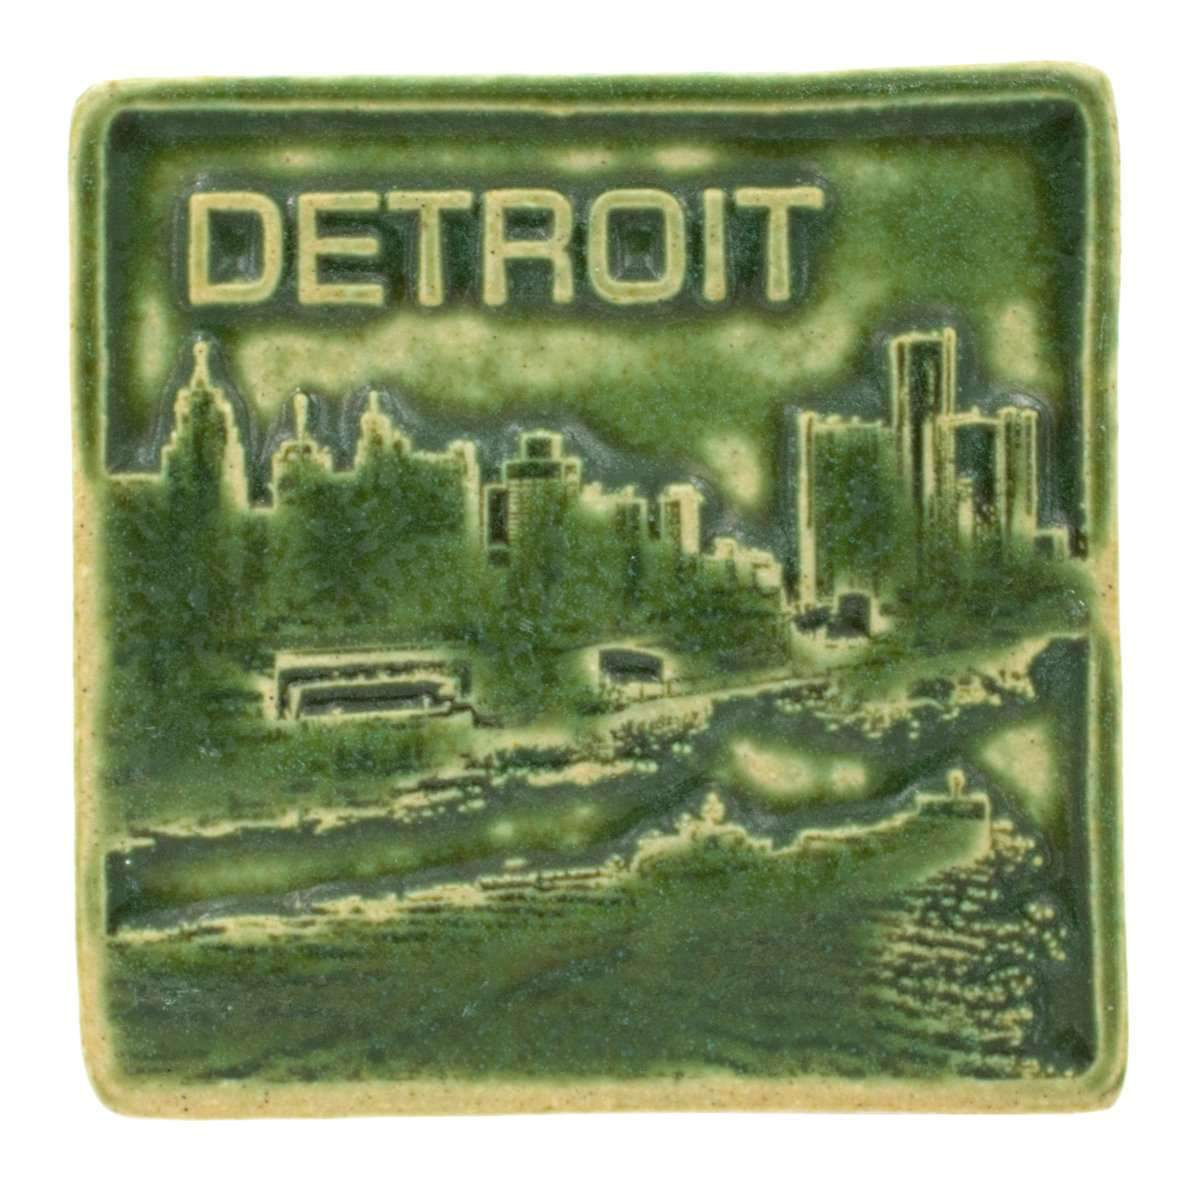 4x4 Detroit Skyline Pewabic Tile - Leaf